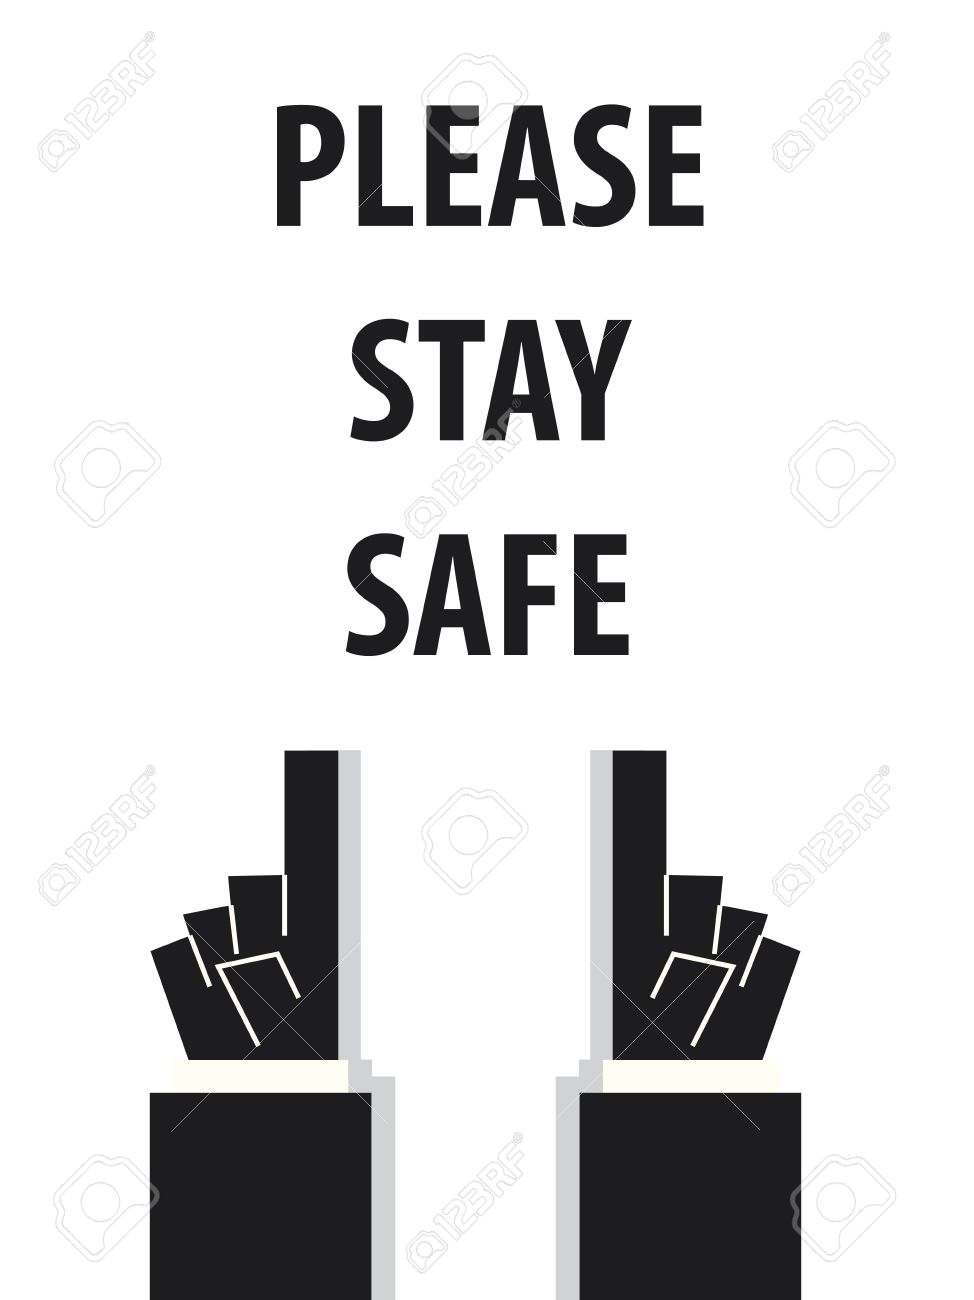 57155717-please-stay-safe-typography-illustration